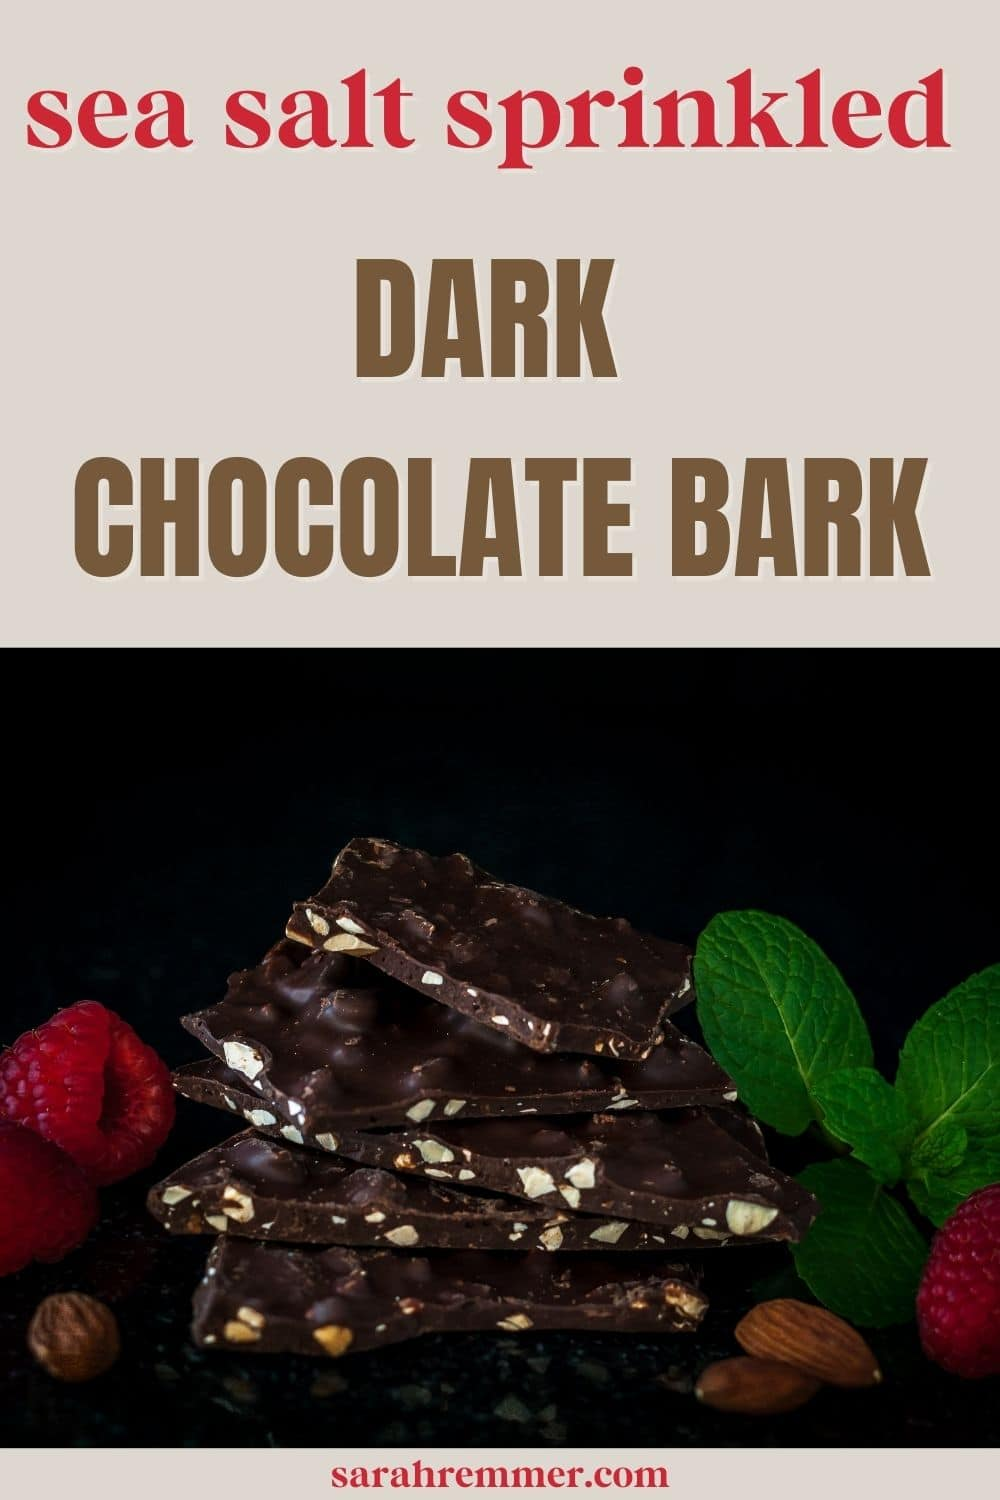 If you're a chocolate-lover like me, you're going to love this recipe for sea salt sprinkled dark chocolate bark. Sea salt is a must here because it really brings out the chocolate on a whole other level.